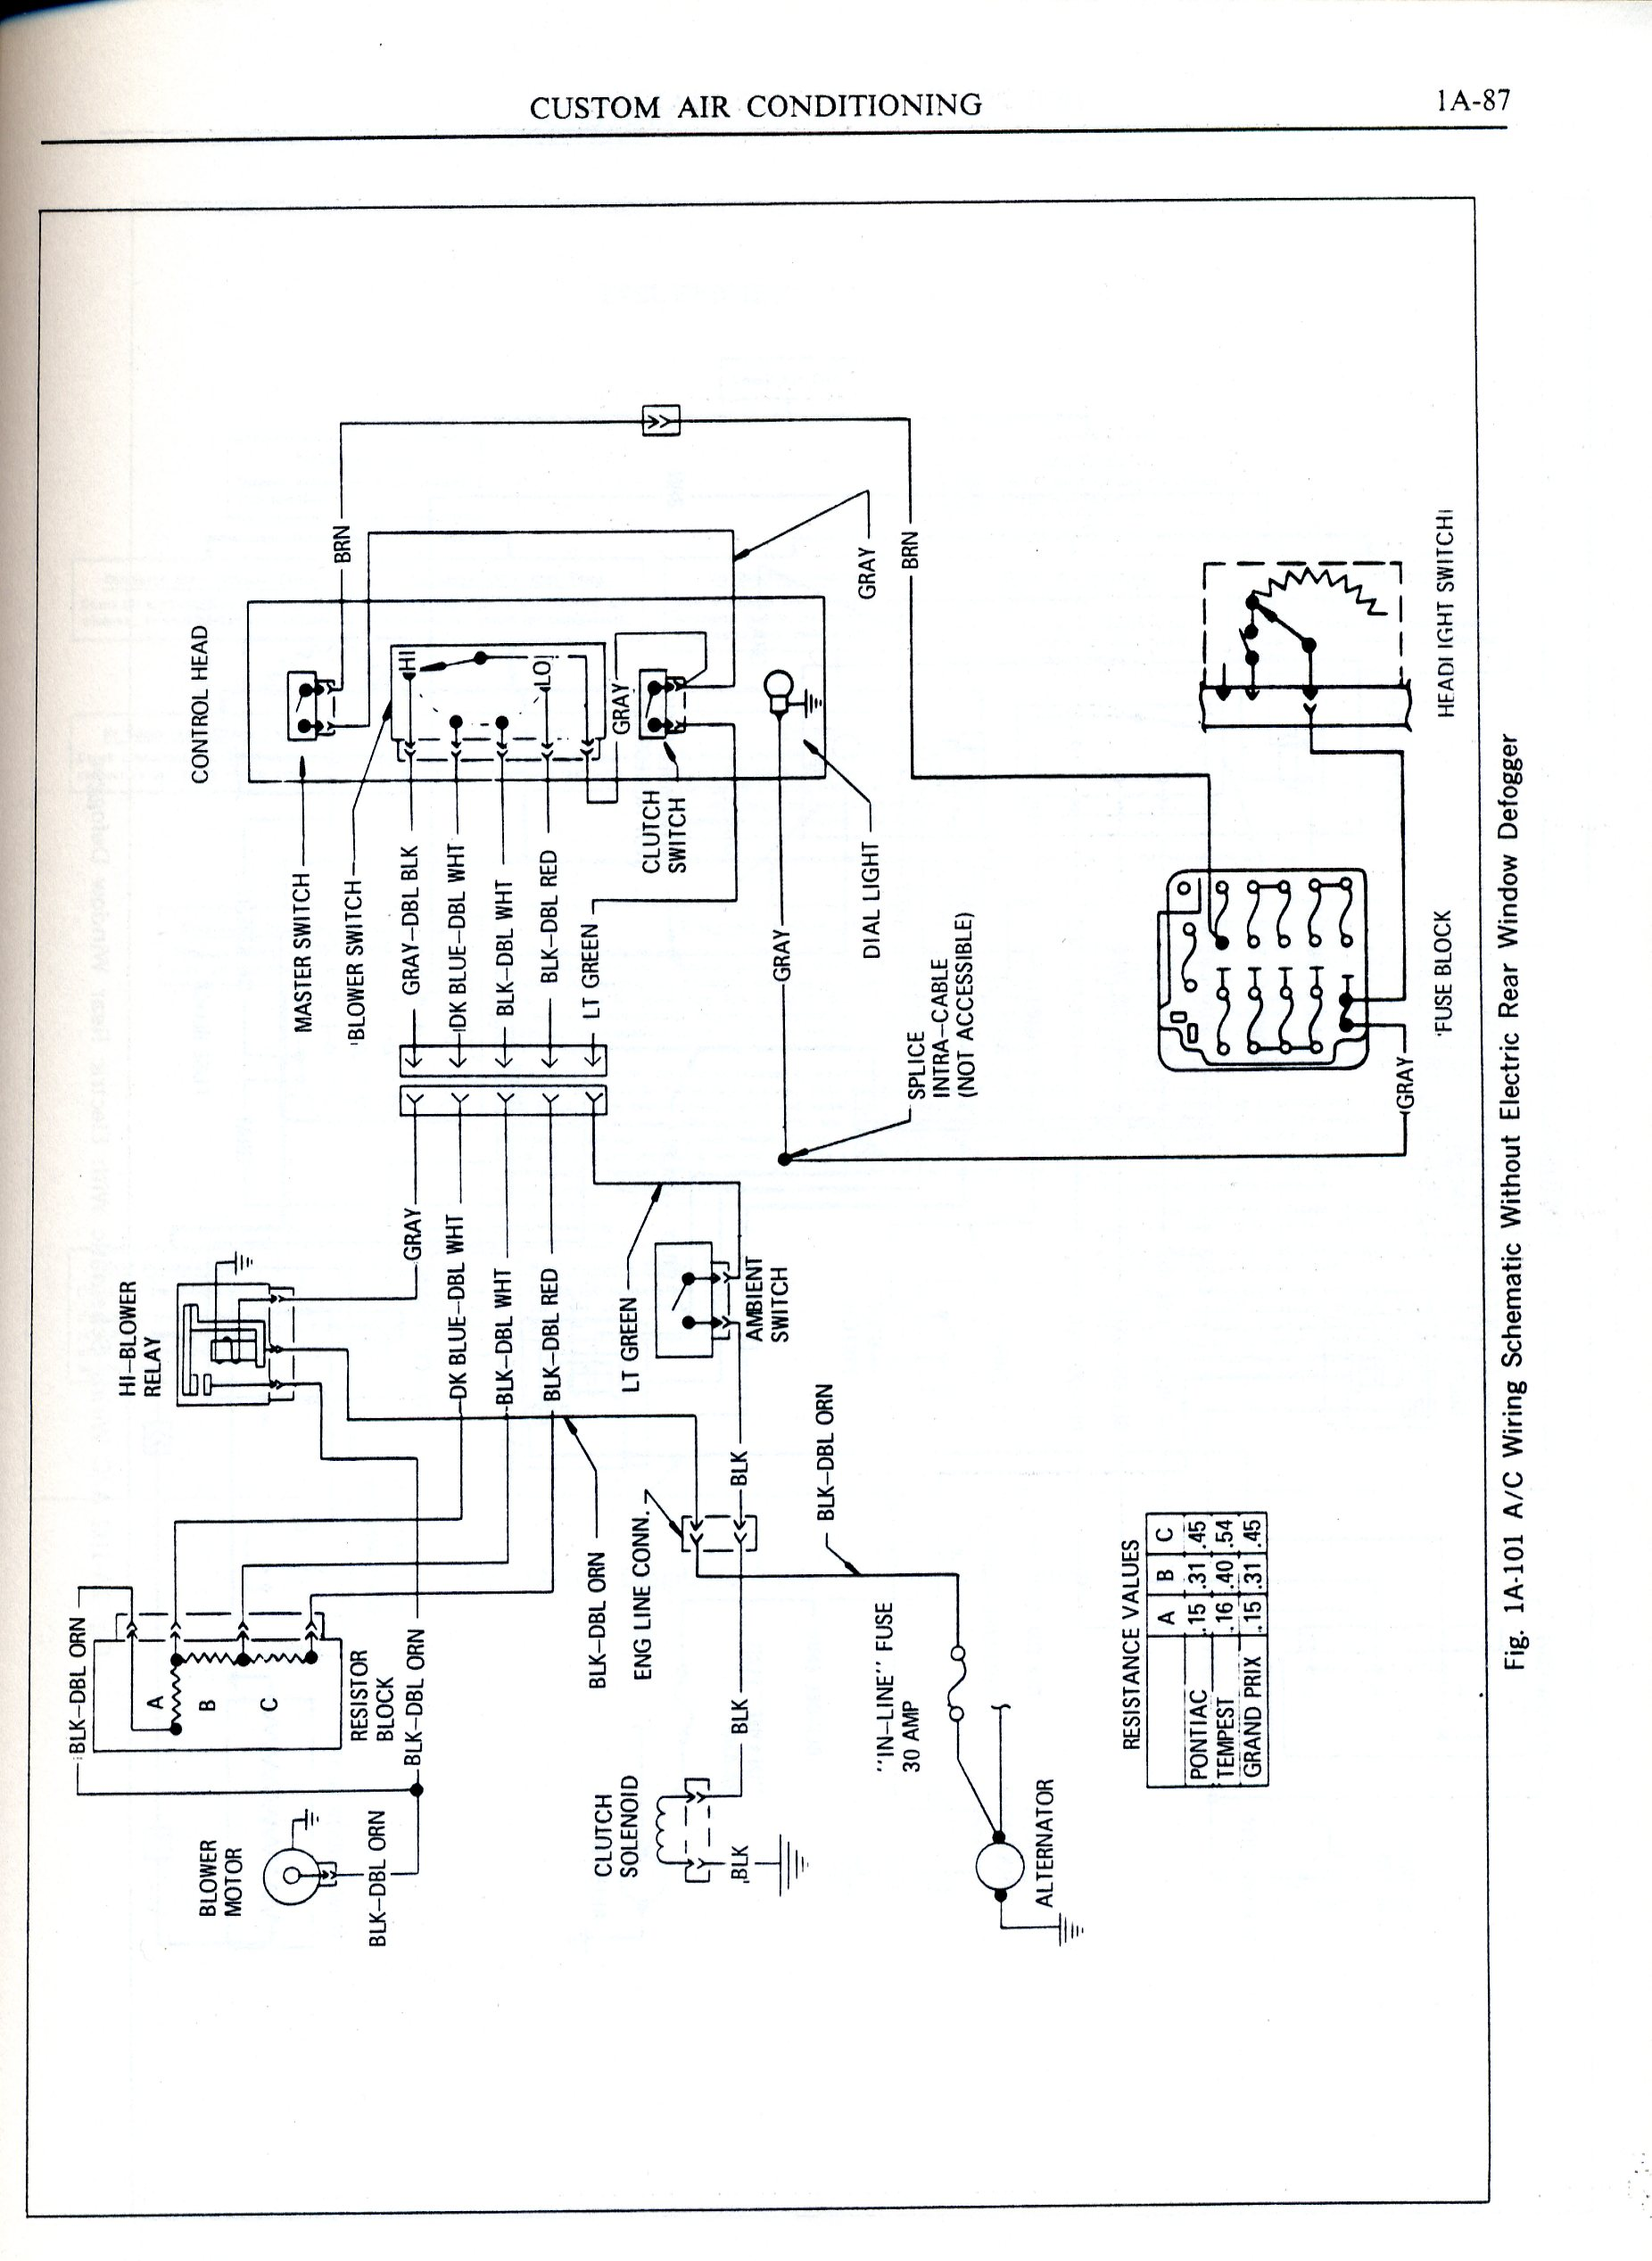 Chevy G Wiring Diagram Schemes. Chevy. Auto Wiring Diagram